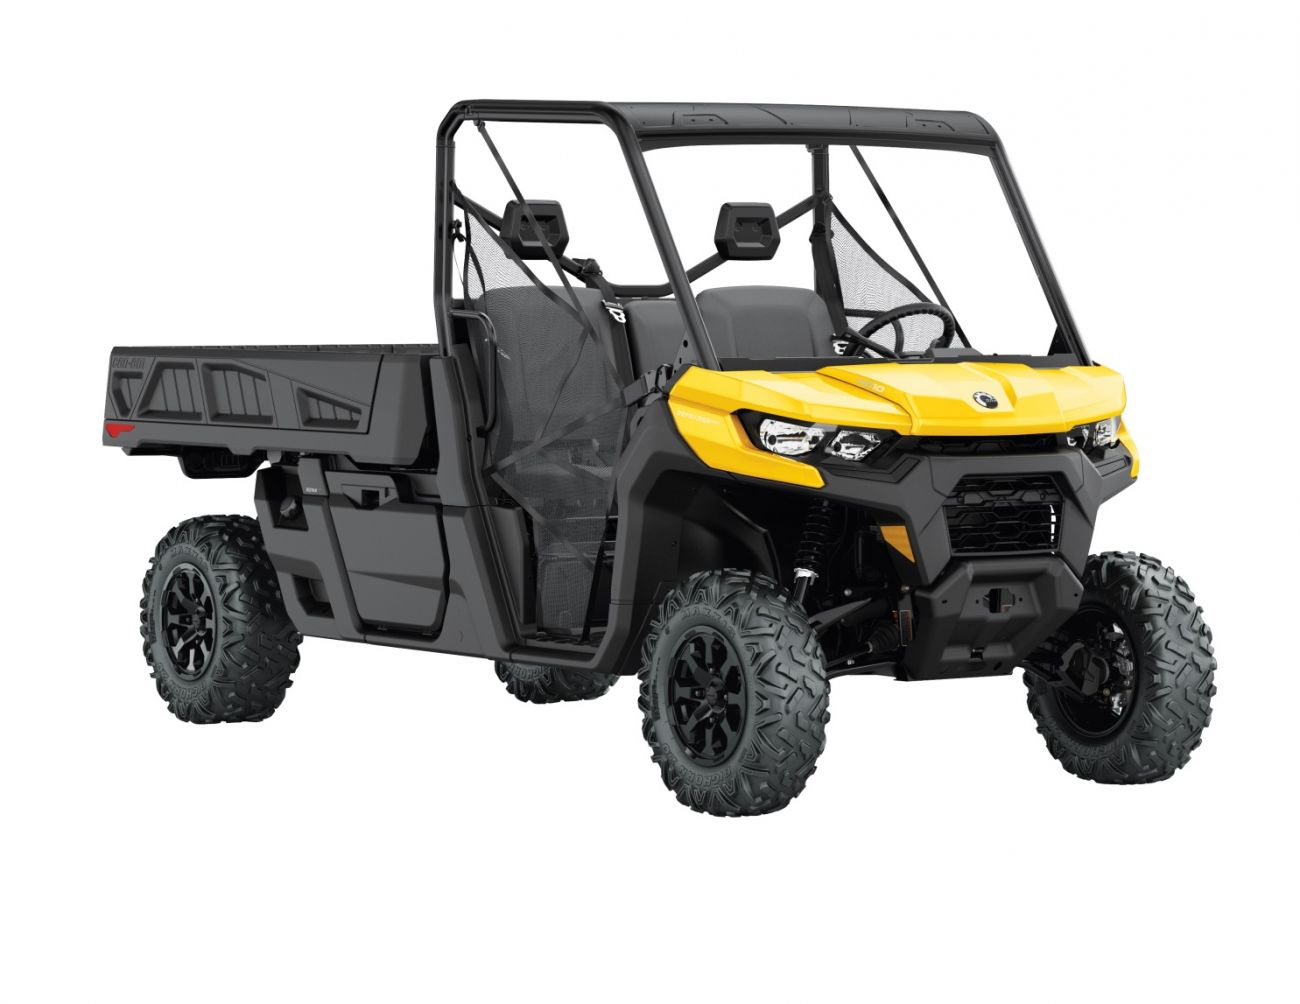 POWERSPORTS CANAM ORV_IMAGERY DEFENDER MY21 ORV_SSV_MY21_DEF_Pro_DPS_HD10H_120720113951_lowres